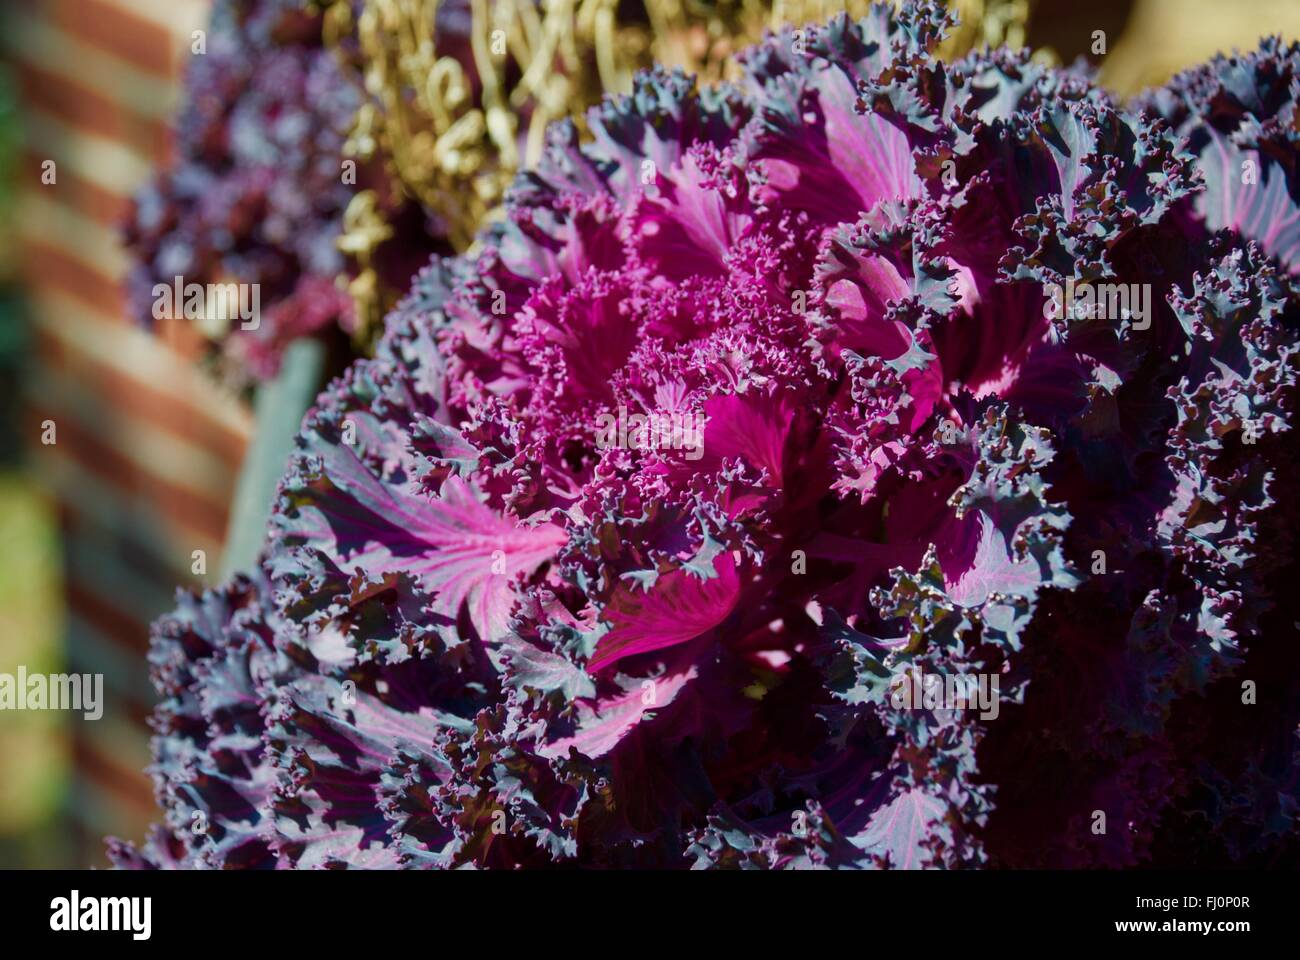 purple lettuce stockfotos purple lettuce bilder alamy. Black Bedroom Furniture Sets. Home Design Ideas